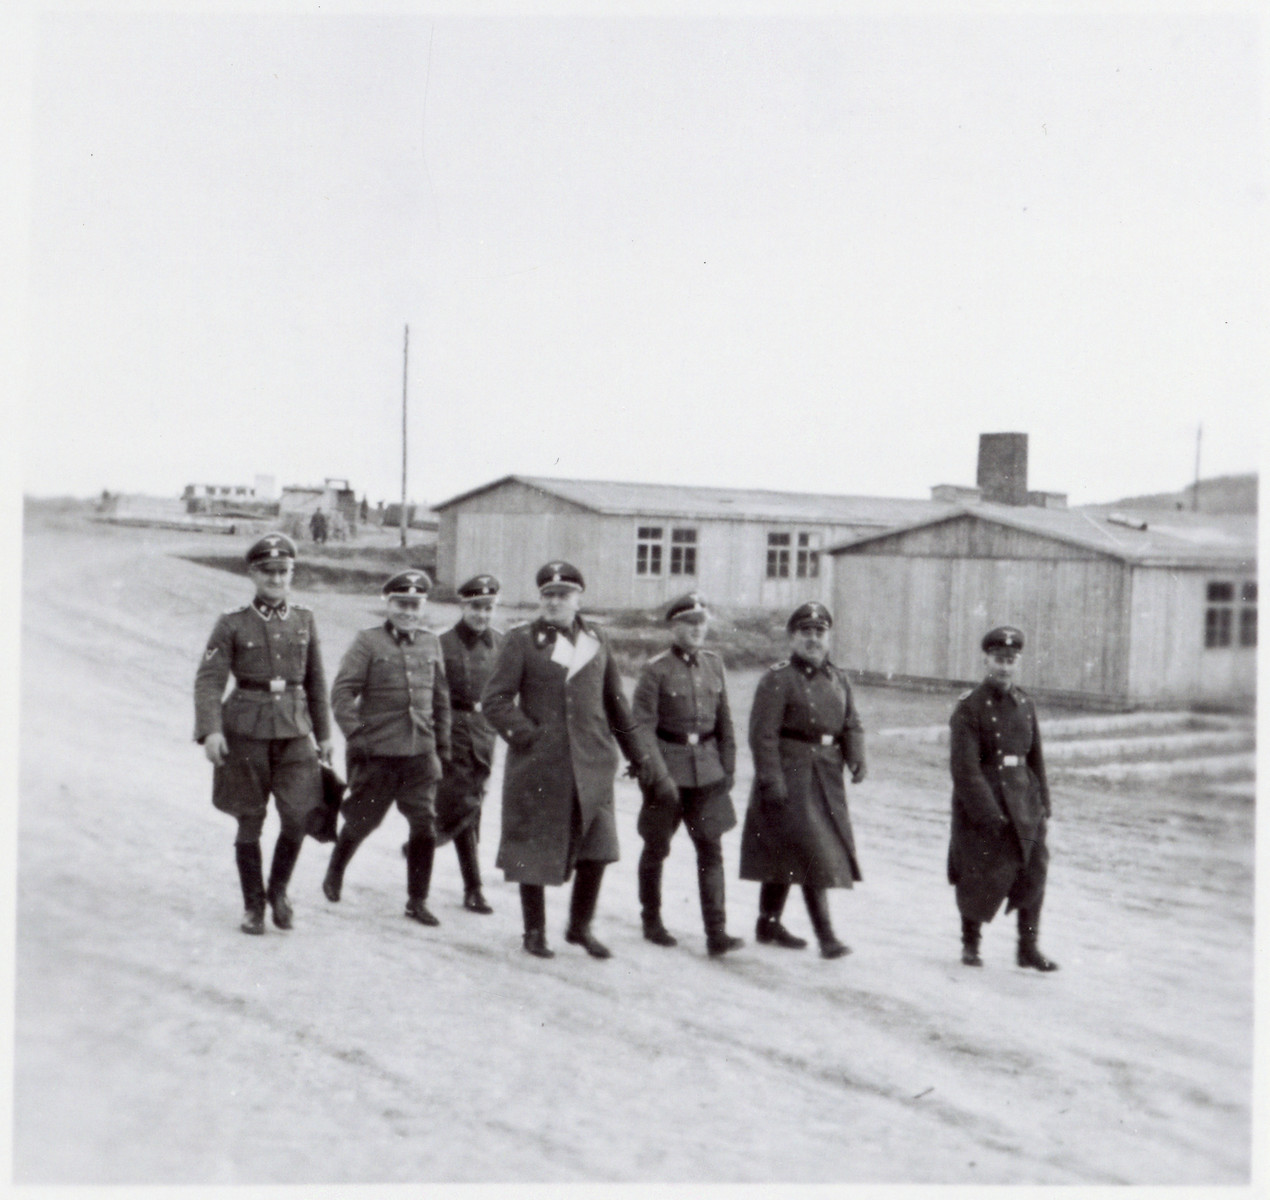 SS-Brigadefuehrer Richard Gluecks, the Inspector of Concentration Camps, pays an official visit to Gross-Rosen.  This was probably taken shortly before Gross-Rosen became an independent concentration camp.  Prior to May 1, 1944 it was a sub-camp of Sachsenhausen.